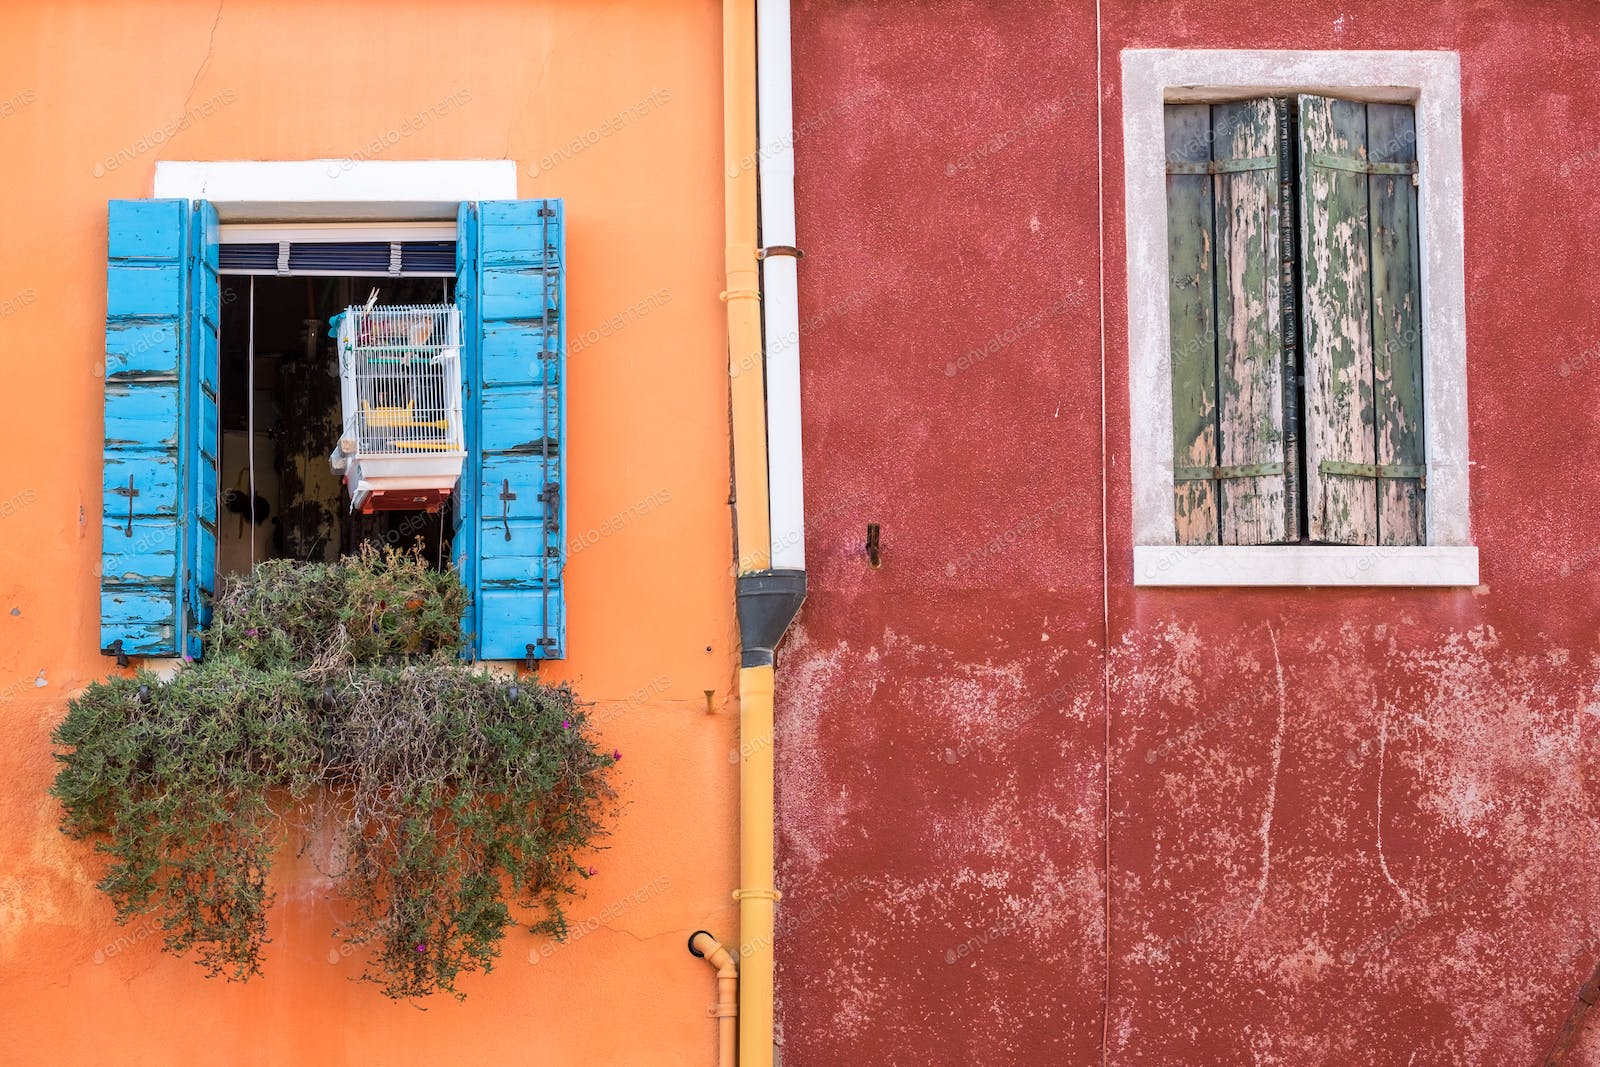 Colorful walls and windows on Burano island, Venice photo by martinm303 on  Envato Elements